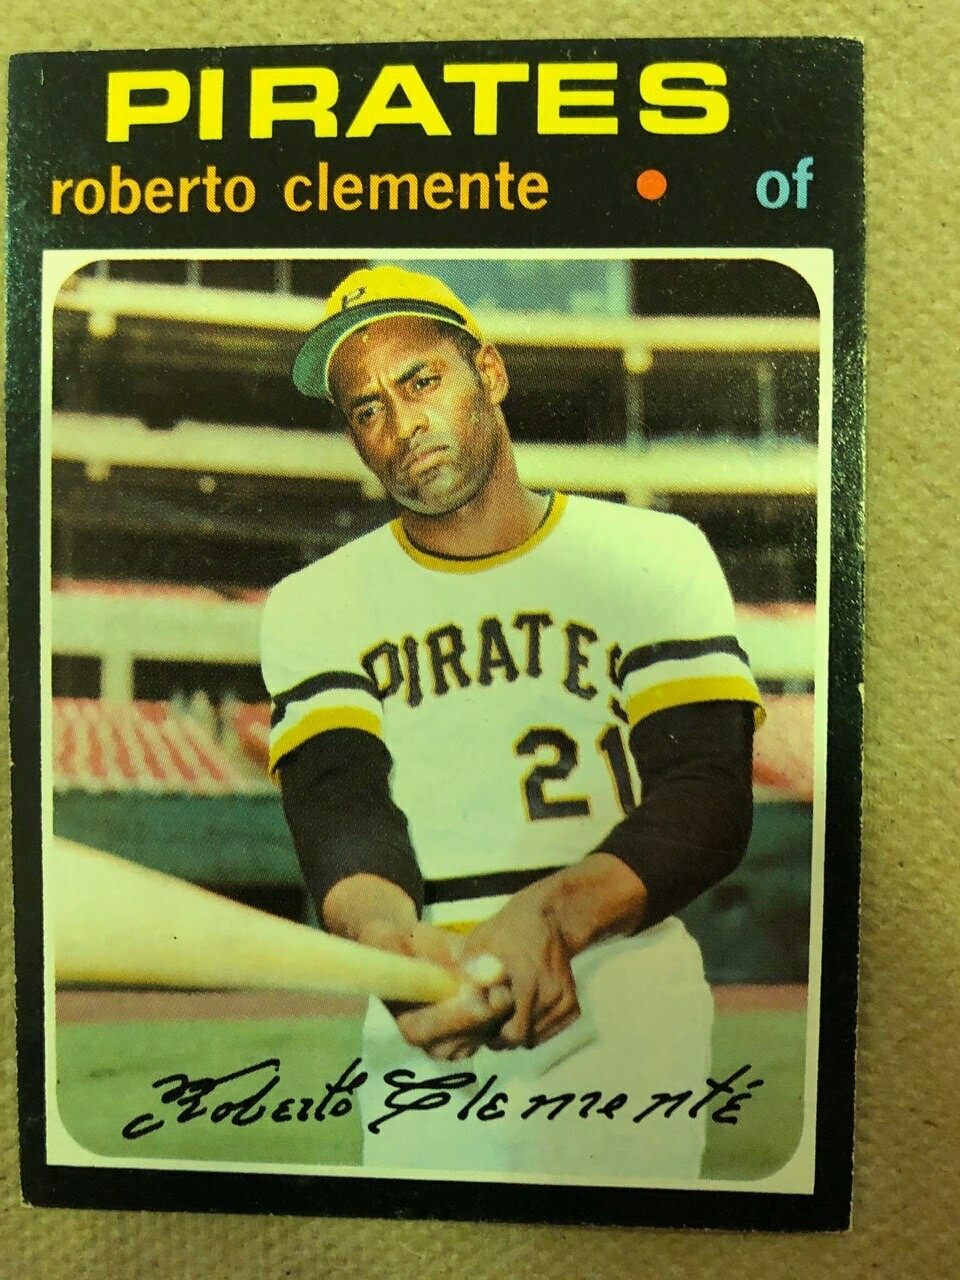 1971 Topps #630 Roberto Clemente, List $200, Sell $150